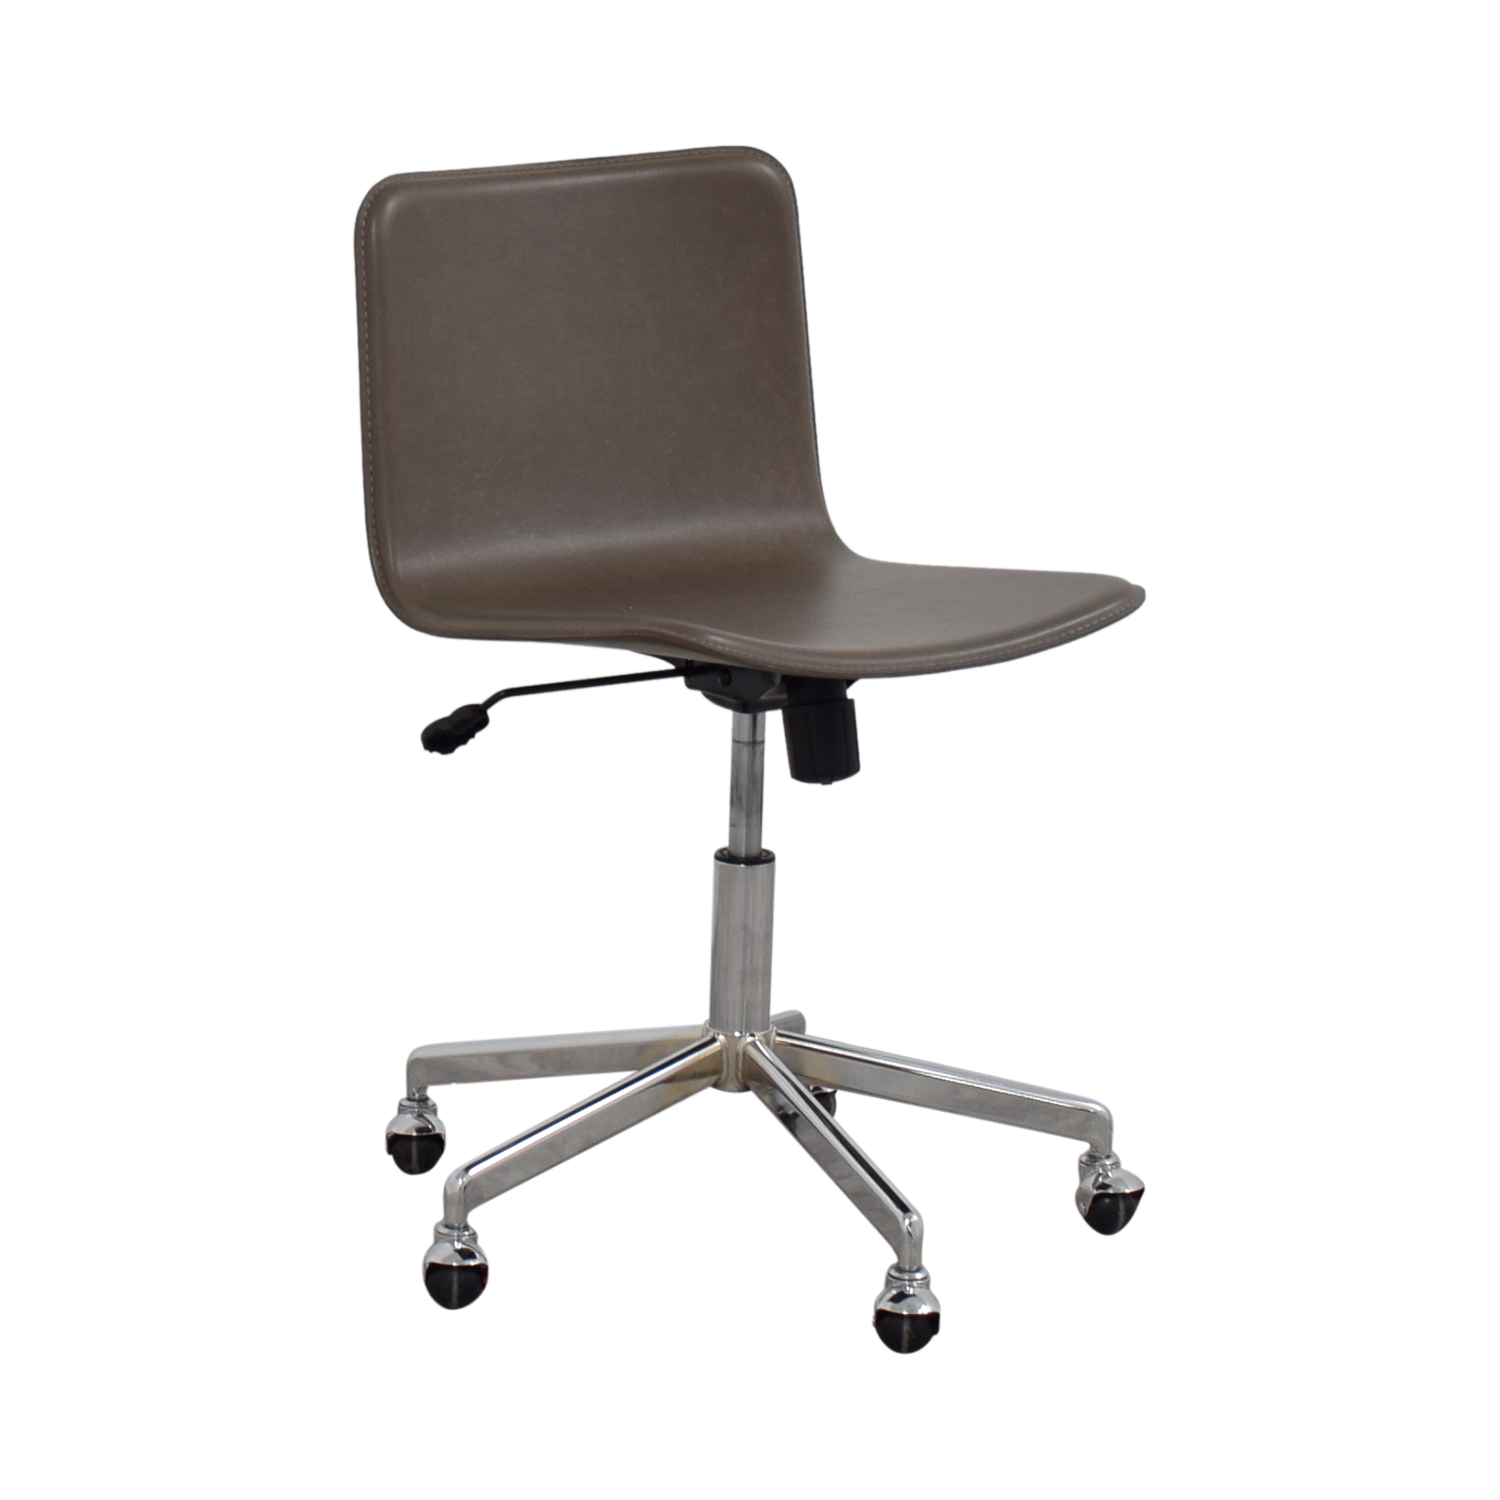 grey leather desk chair power chairside end table 83 off cb2 adjustable office on